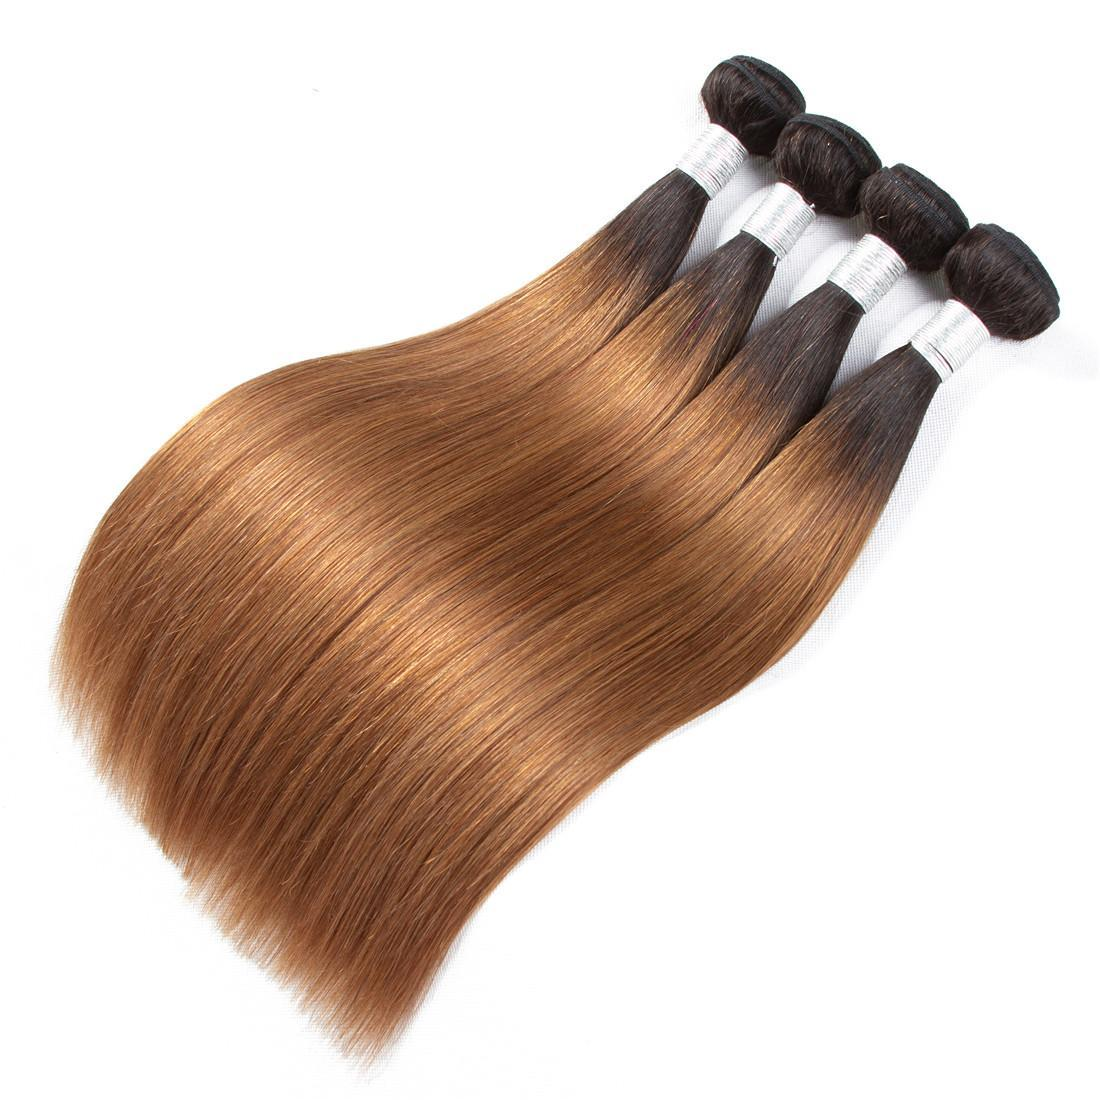 2 Tone Ombre Peruvian Straight Hair Weave Bundles 1B/30 Non Remy Human Hair Extensions 3 Or 4 Bundles Human Hair Extensions Ombre Weaves